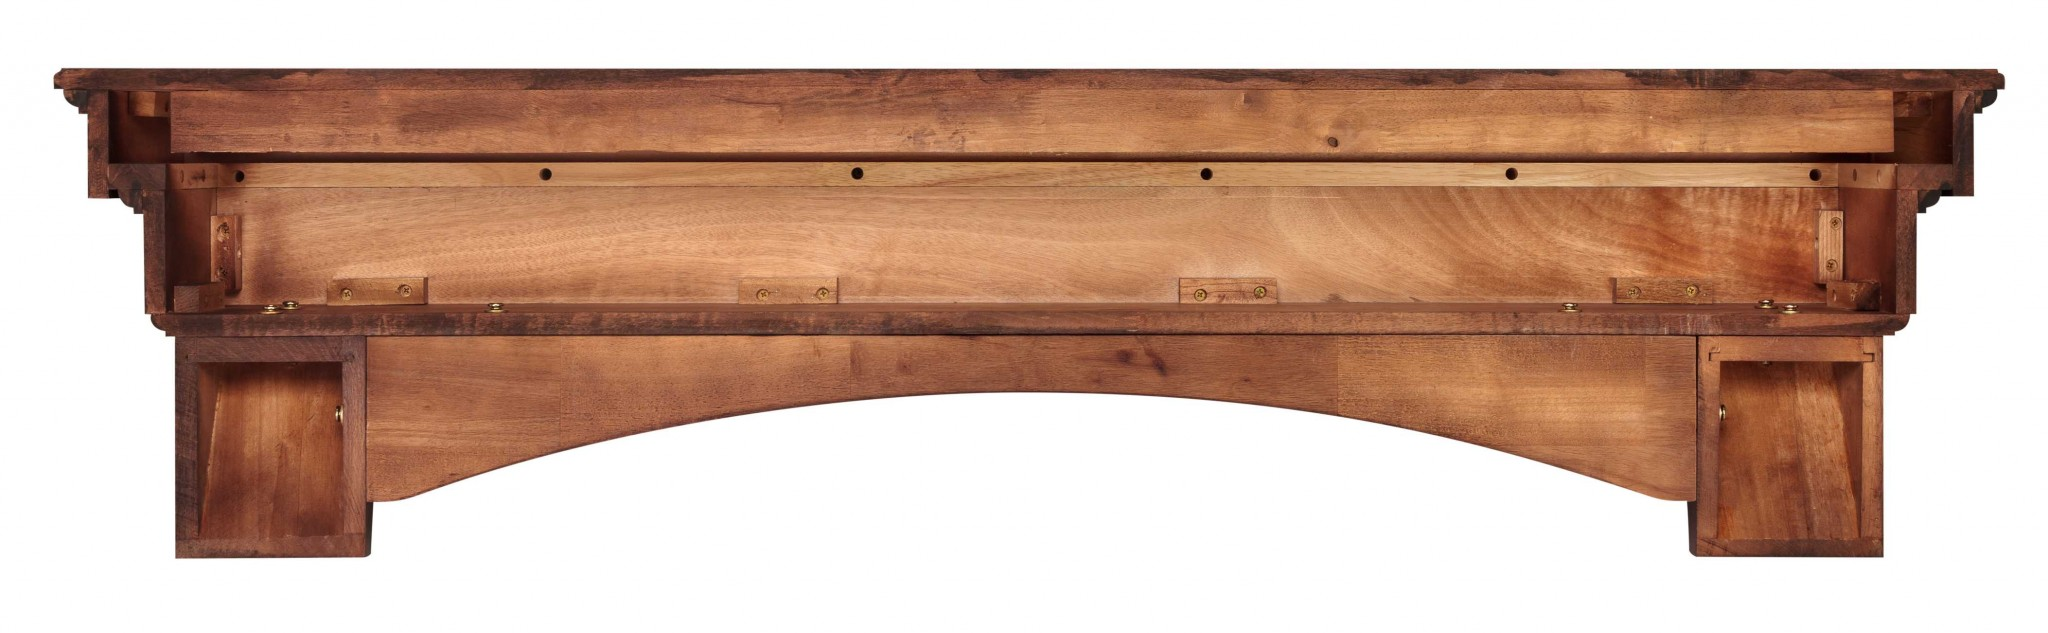 "72"" Sophisticated Distressed Cherry Wood Mantel Shelf"